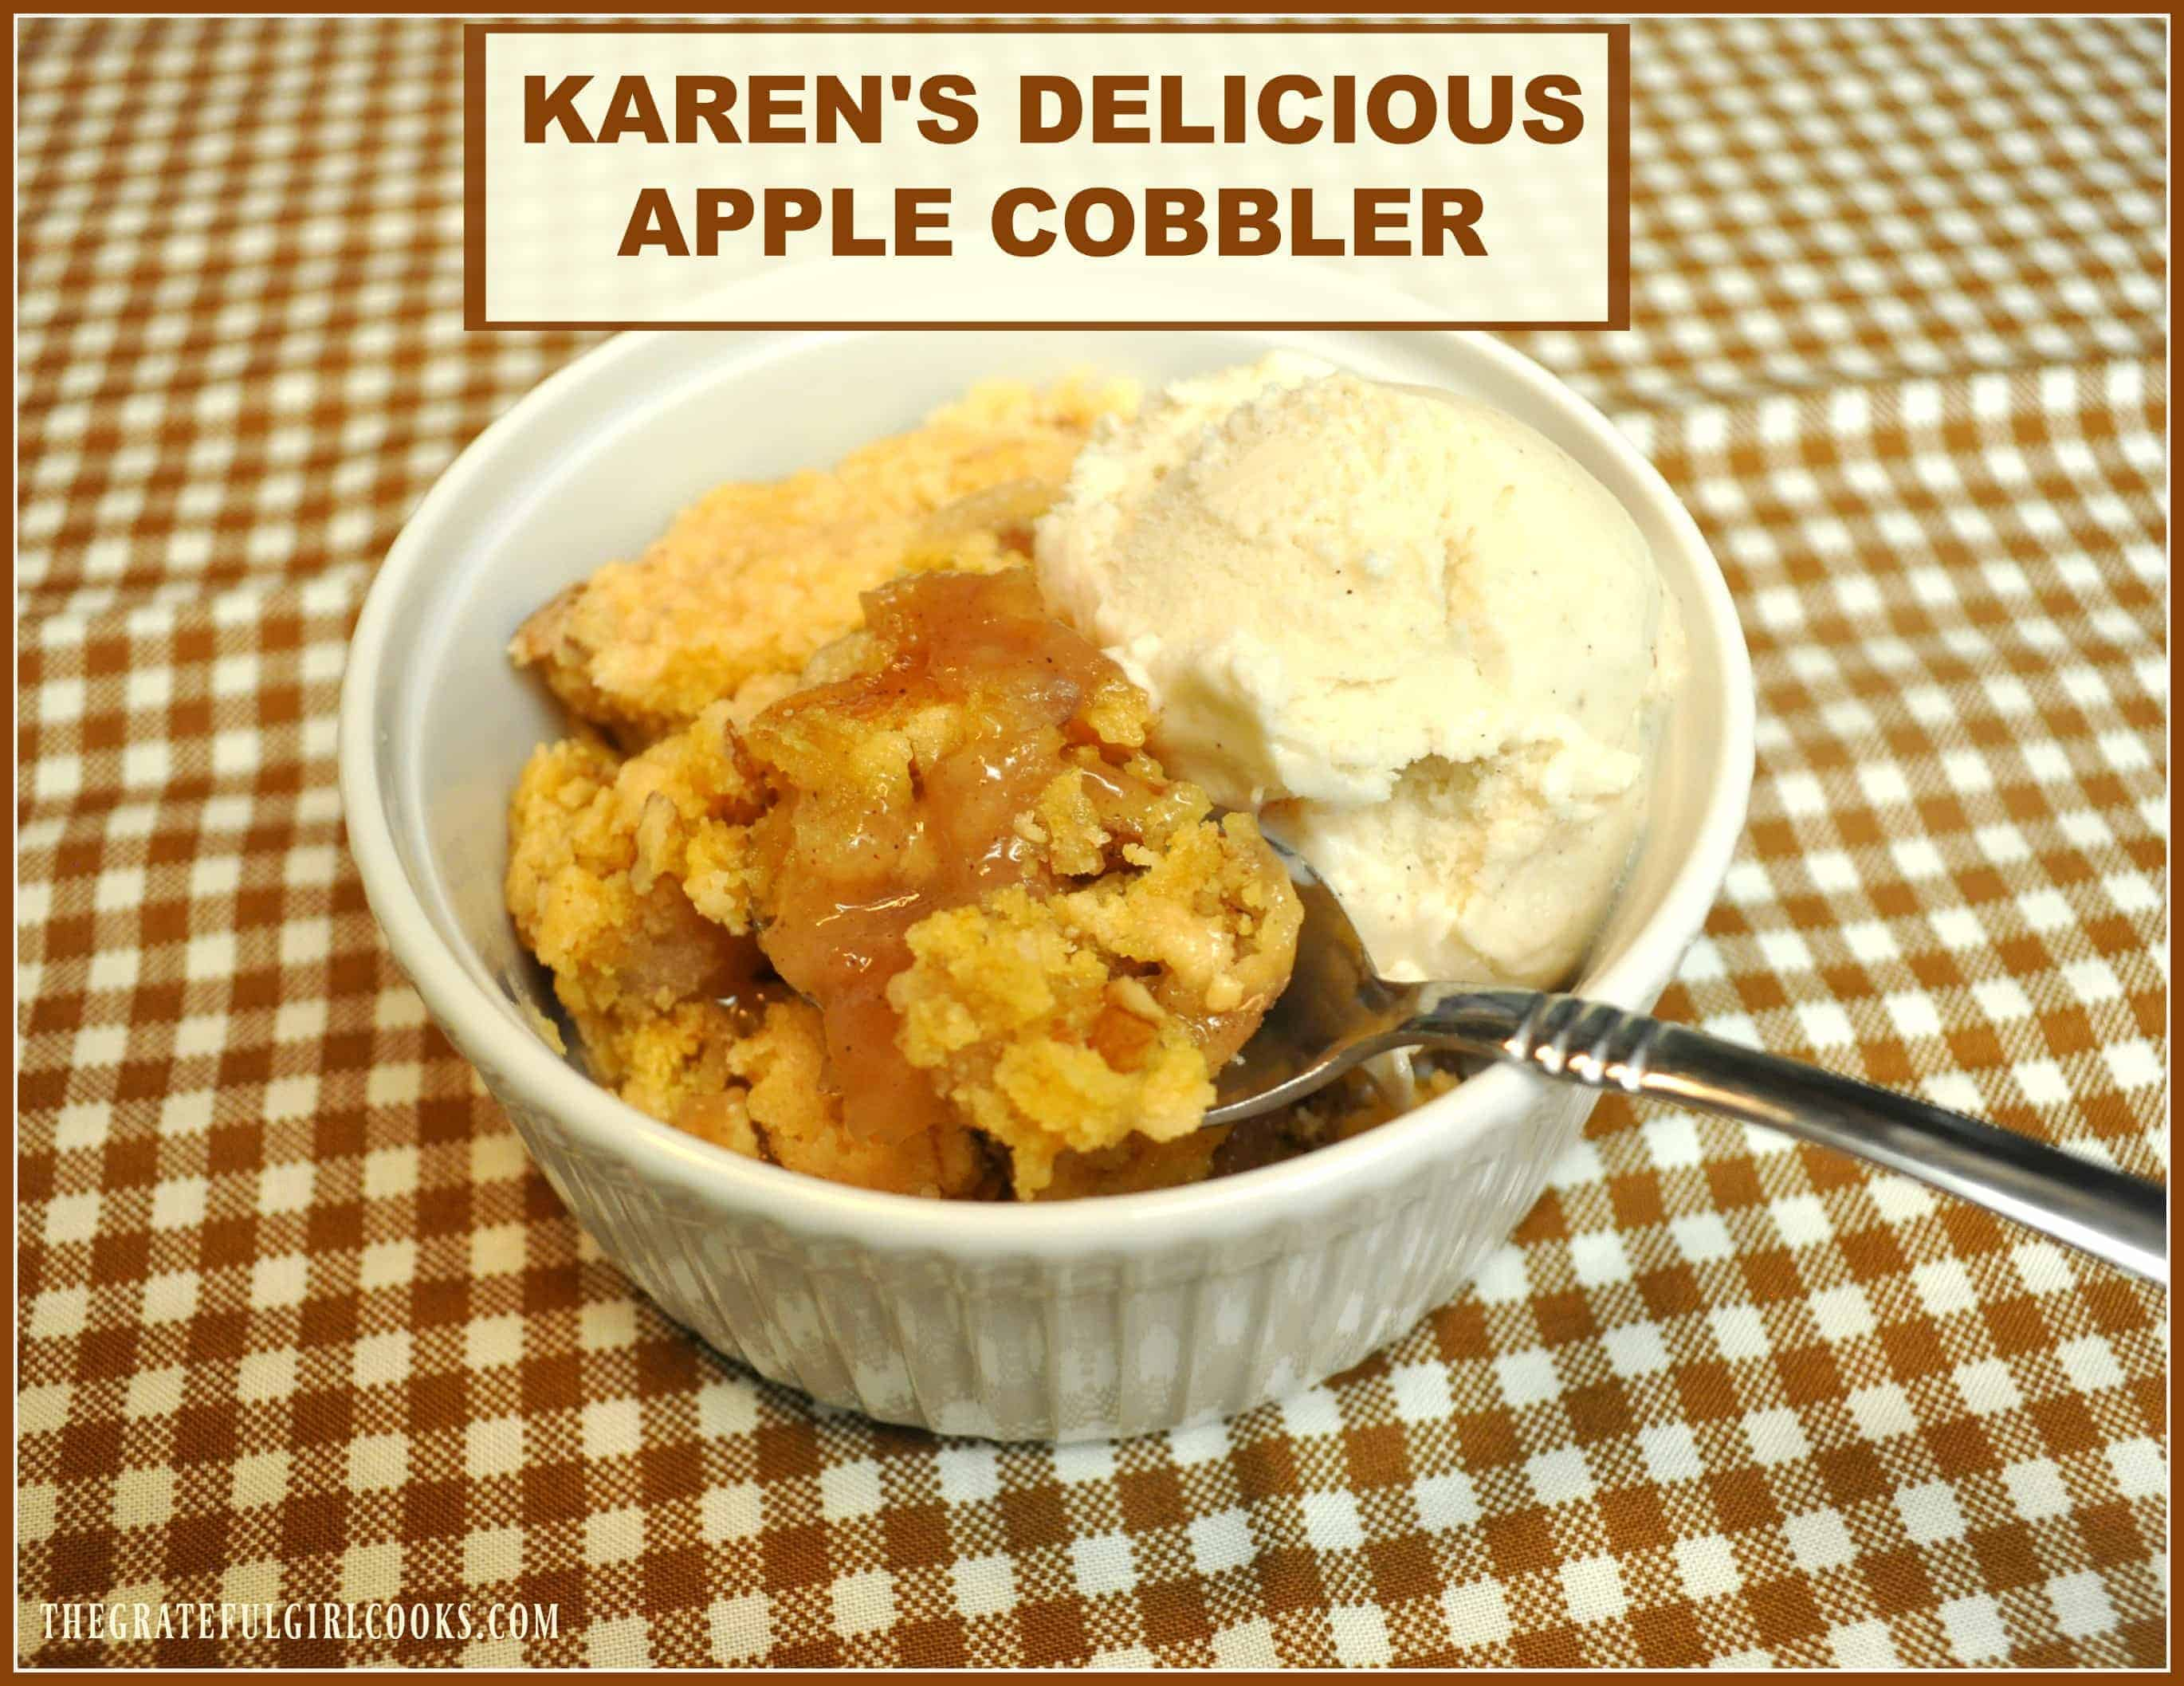 Karen's Delicious Apple Cobbler / The Grateful Girl Cooks!Karen's Delicious Apple Cobbler / The Grateful Girl Cooks! Four ingredients and thirty minutes is all you need to make this EASY and delicious apple pie cobbler for dessert!